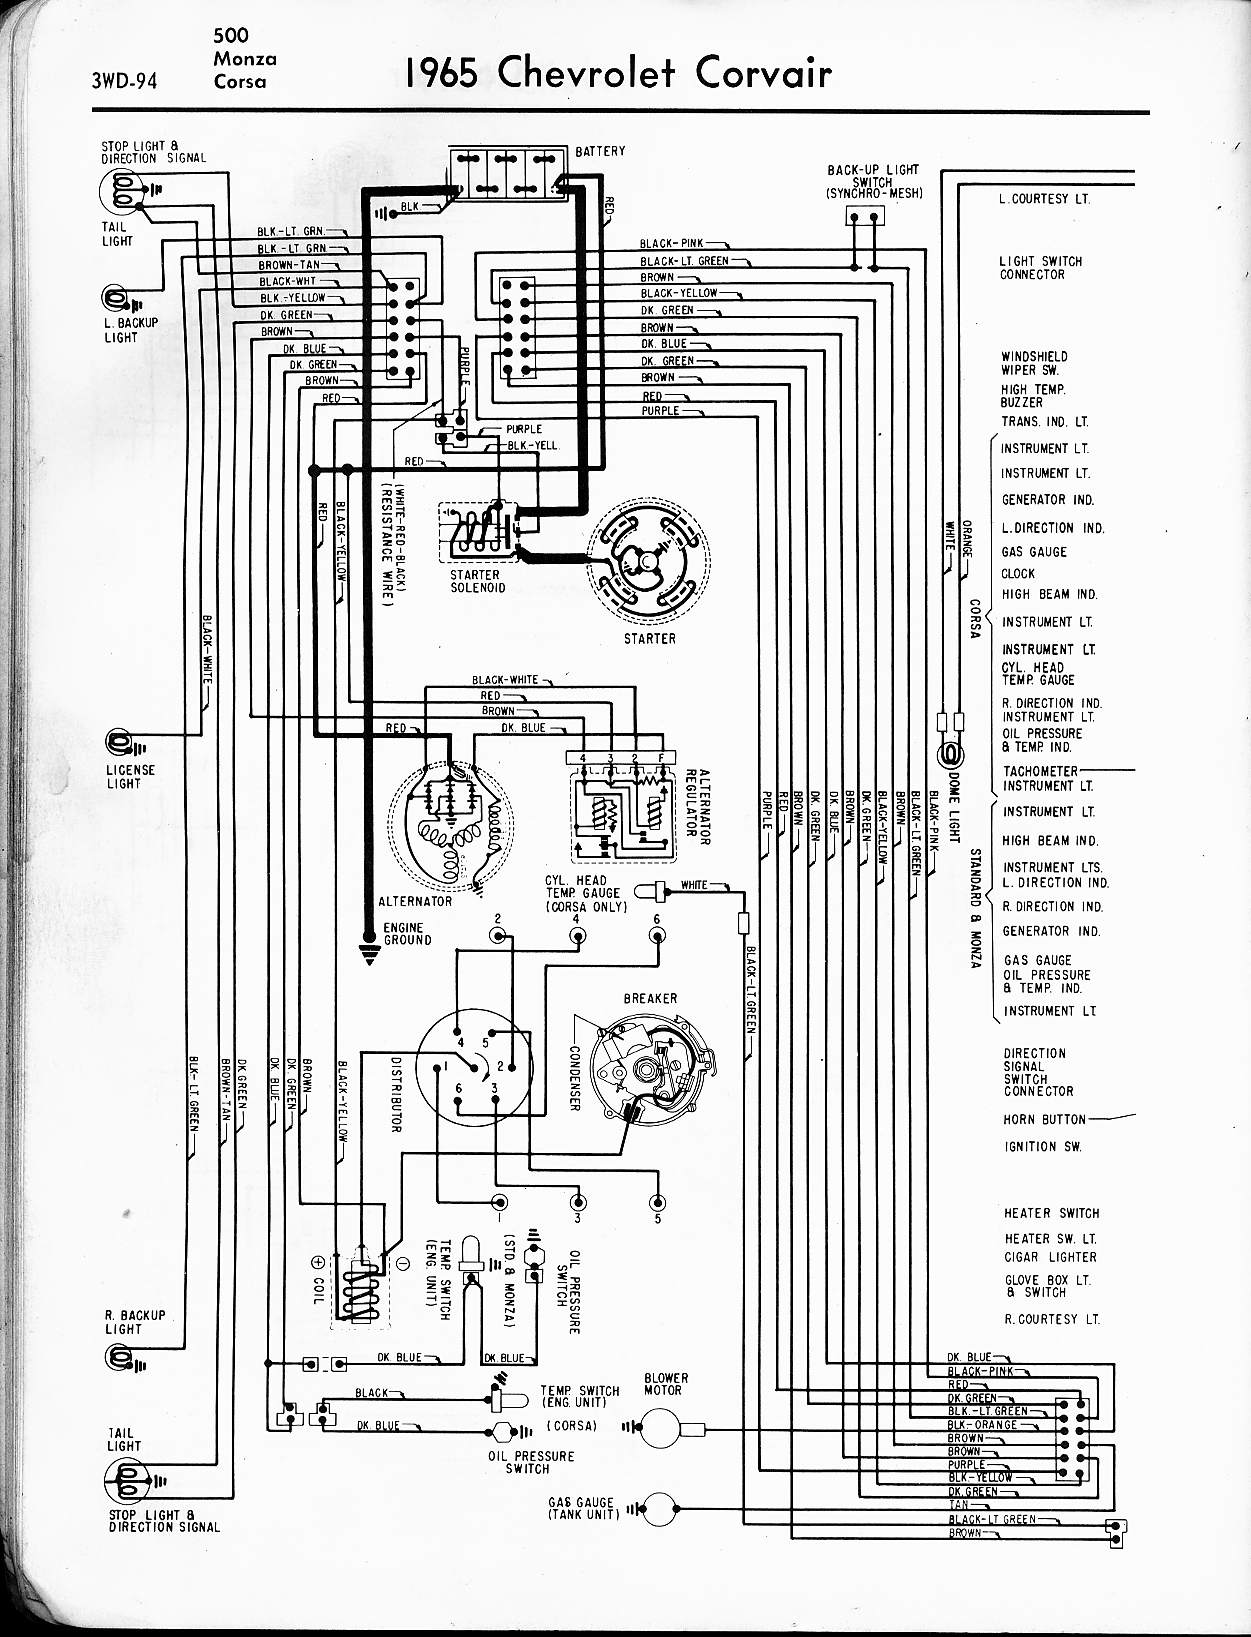 MWireChev64_3WD 094 57 65 chevy wiring diagrams 65 chevy wiring harness at suagrazia.org